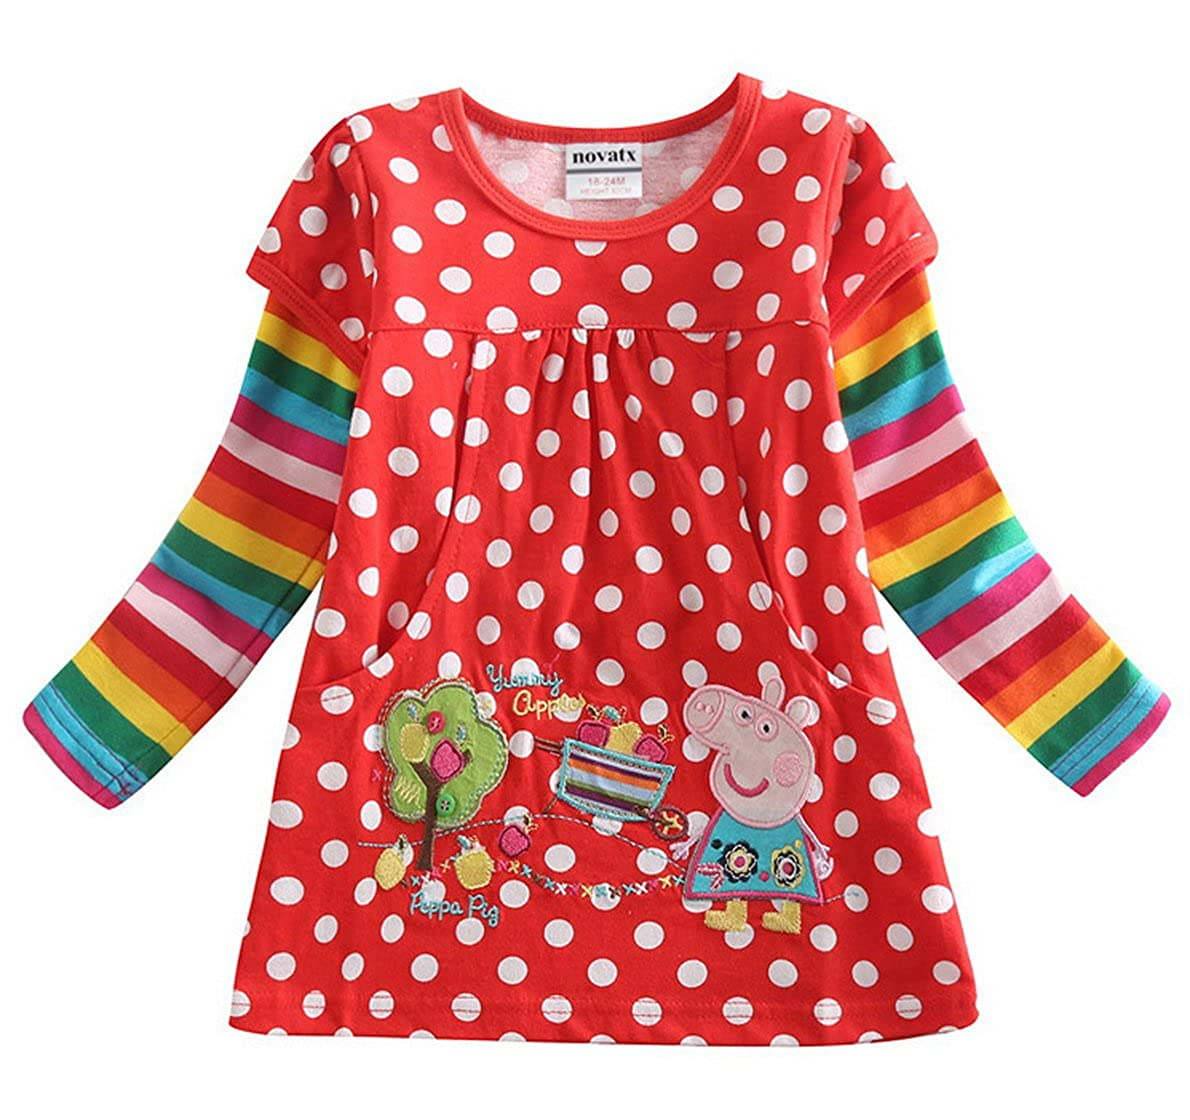 Peppa Pig Little Girls Long Sleeve Embroidery Cotton T-Shirts Tees 1-6Y Tiful